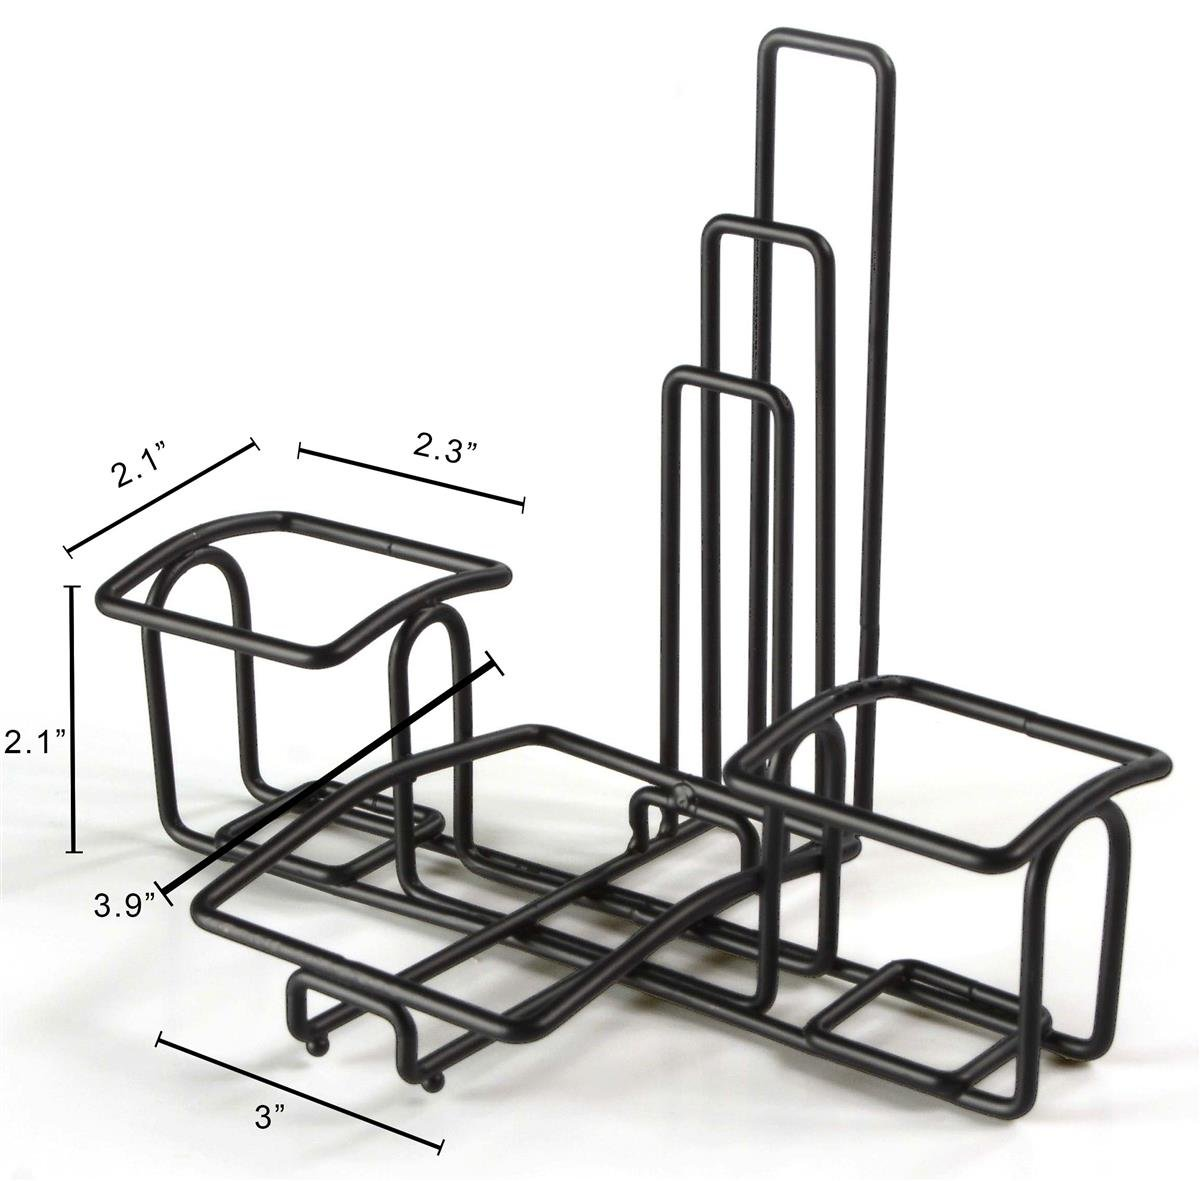 Condiment Caddy Stands with Menu Holders, Wire Organizers for Condiments, Steel (Black) - Set of 10 by Displays2go (Image #3)